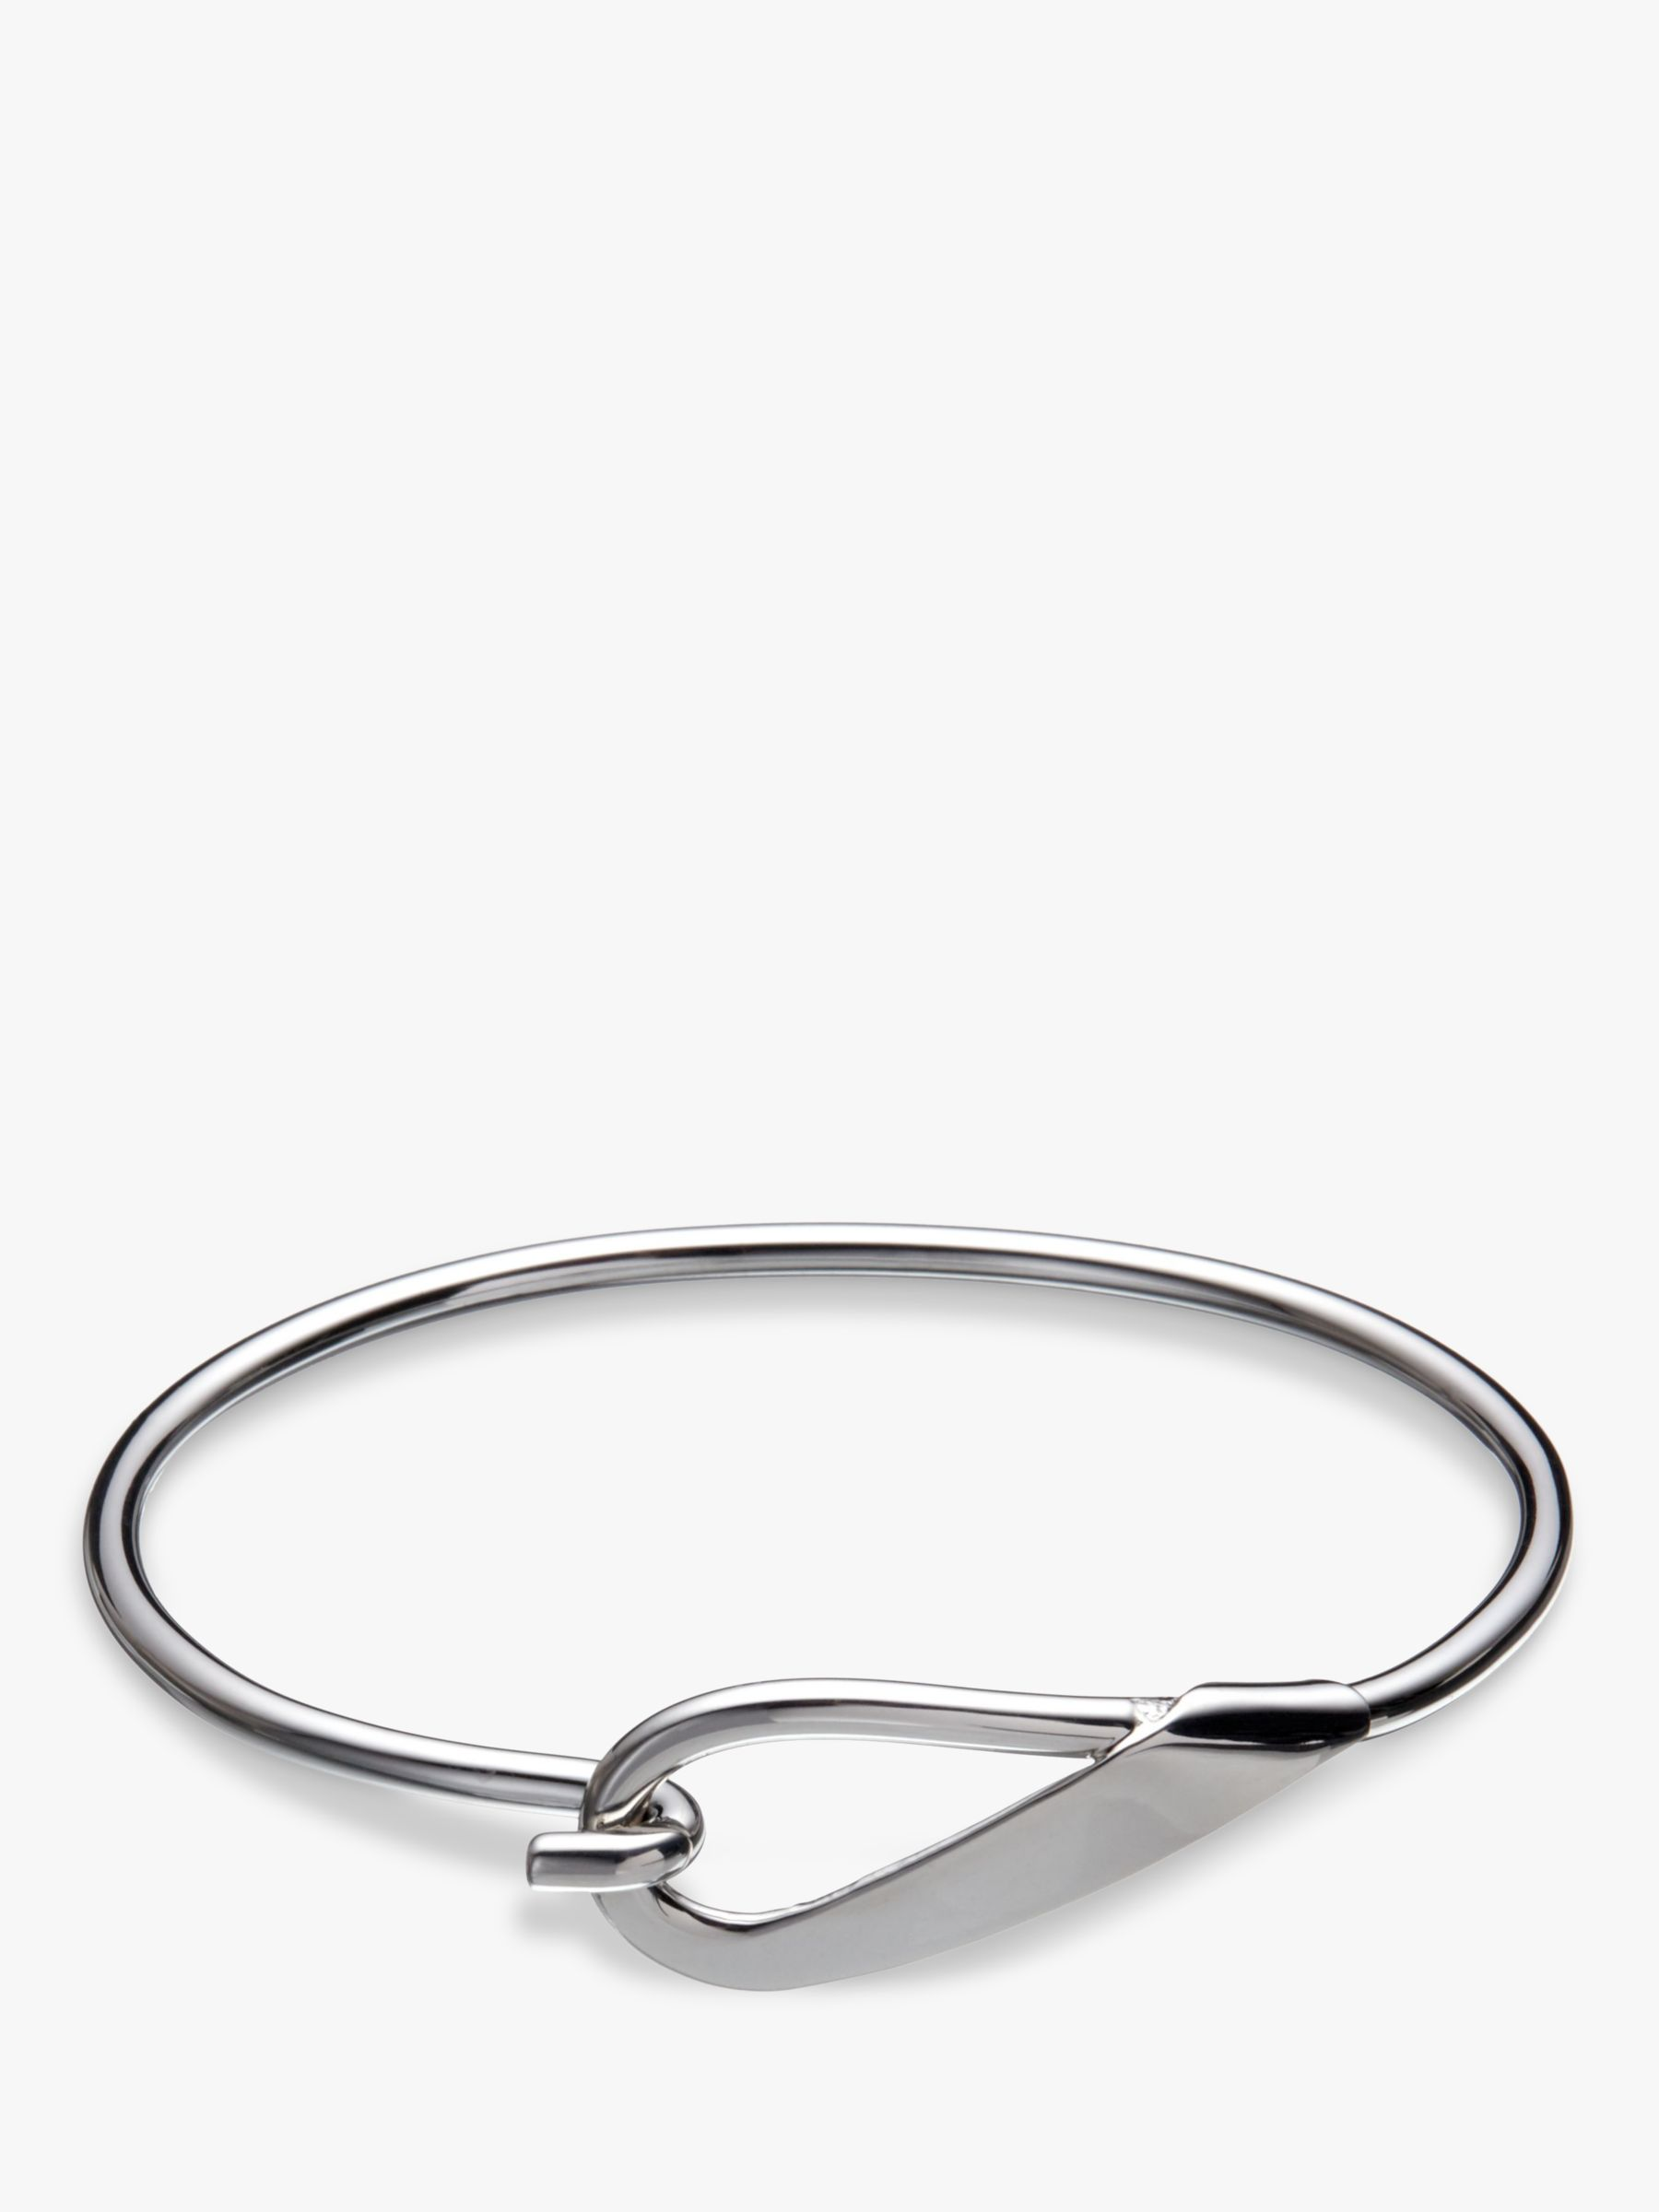 Andea Andea Sterling Silver Hook Open Bangle, Silver